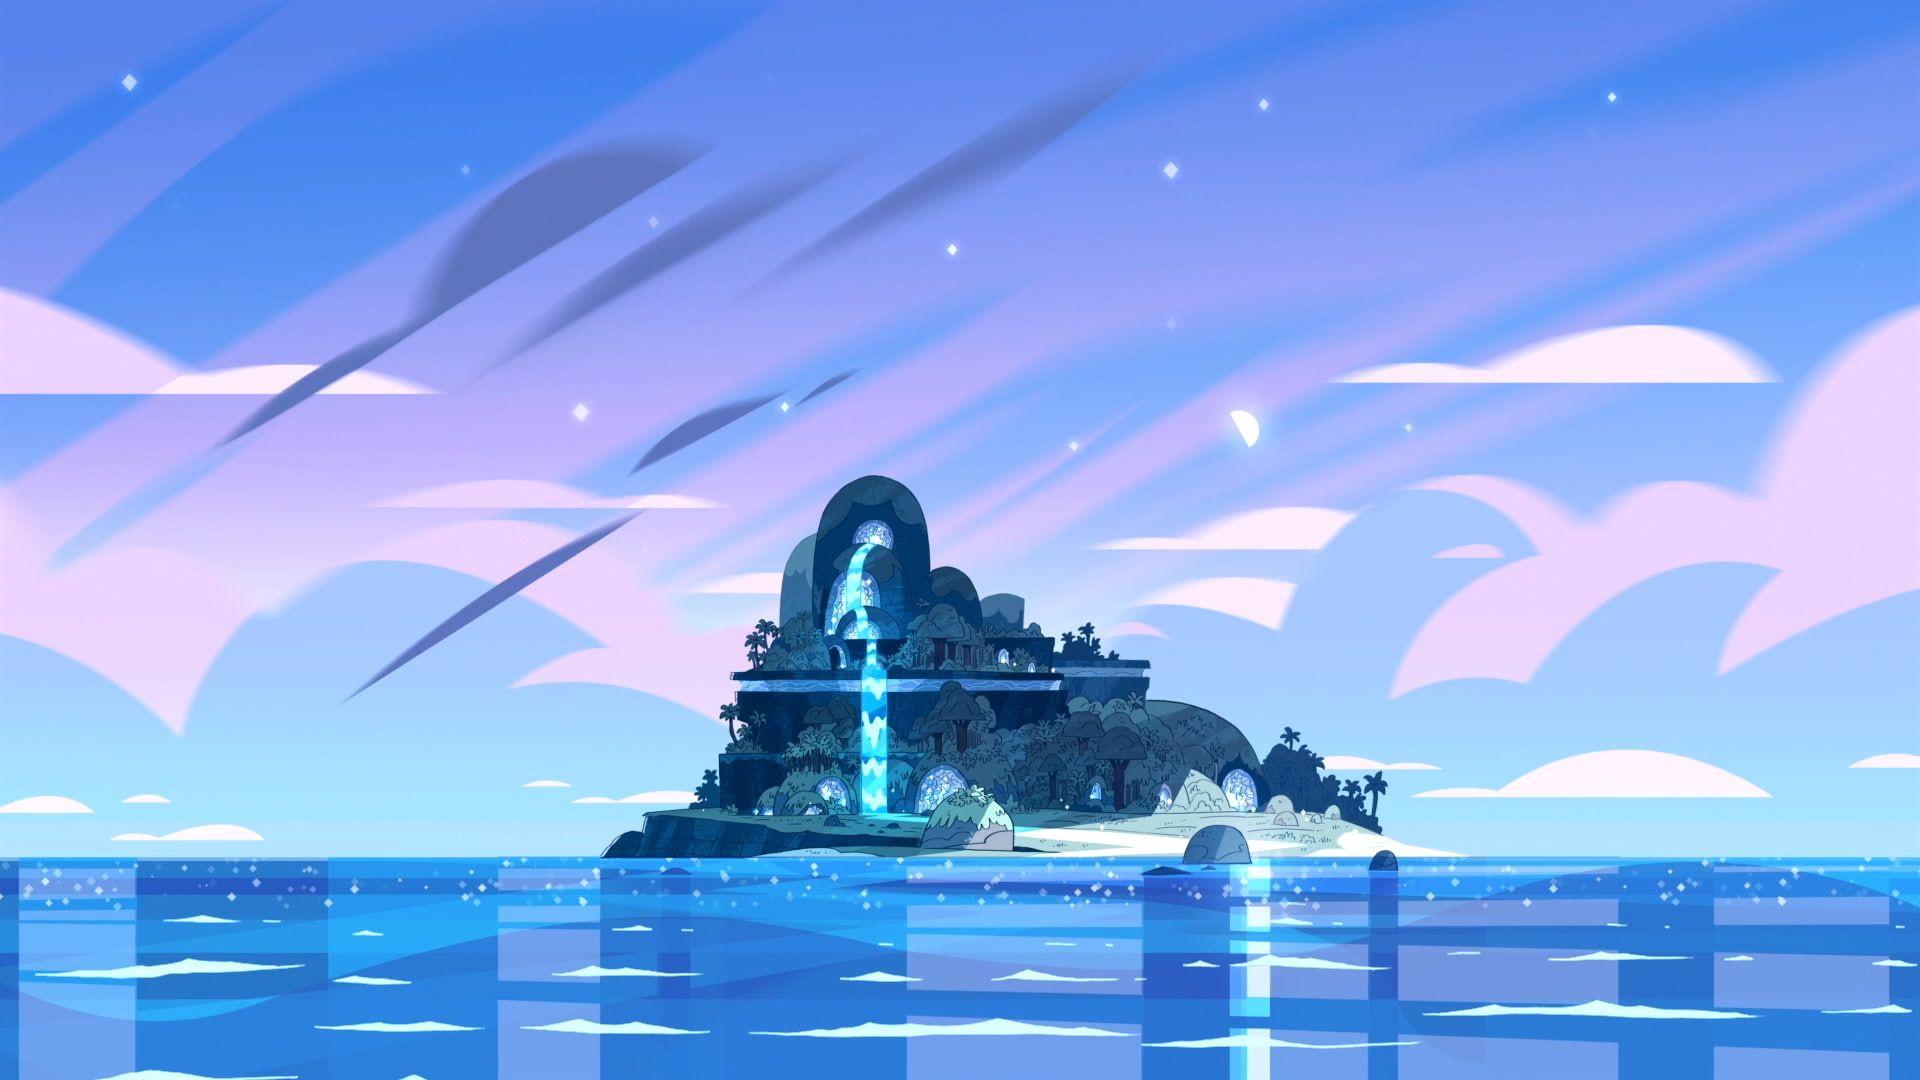 cartoon Steven Universe 1080P wallpaper hdwallpaper